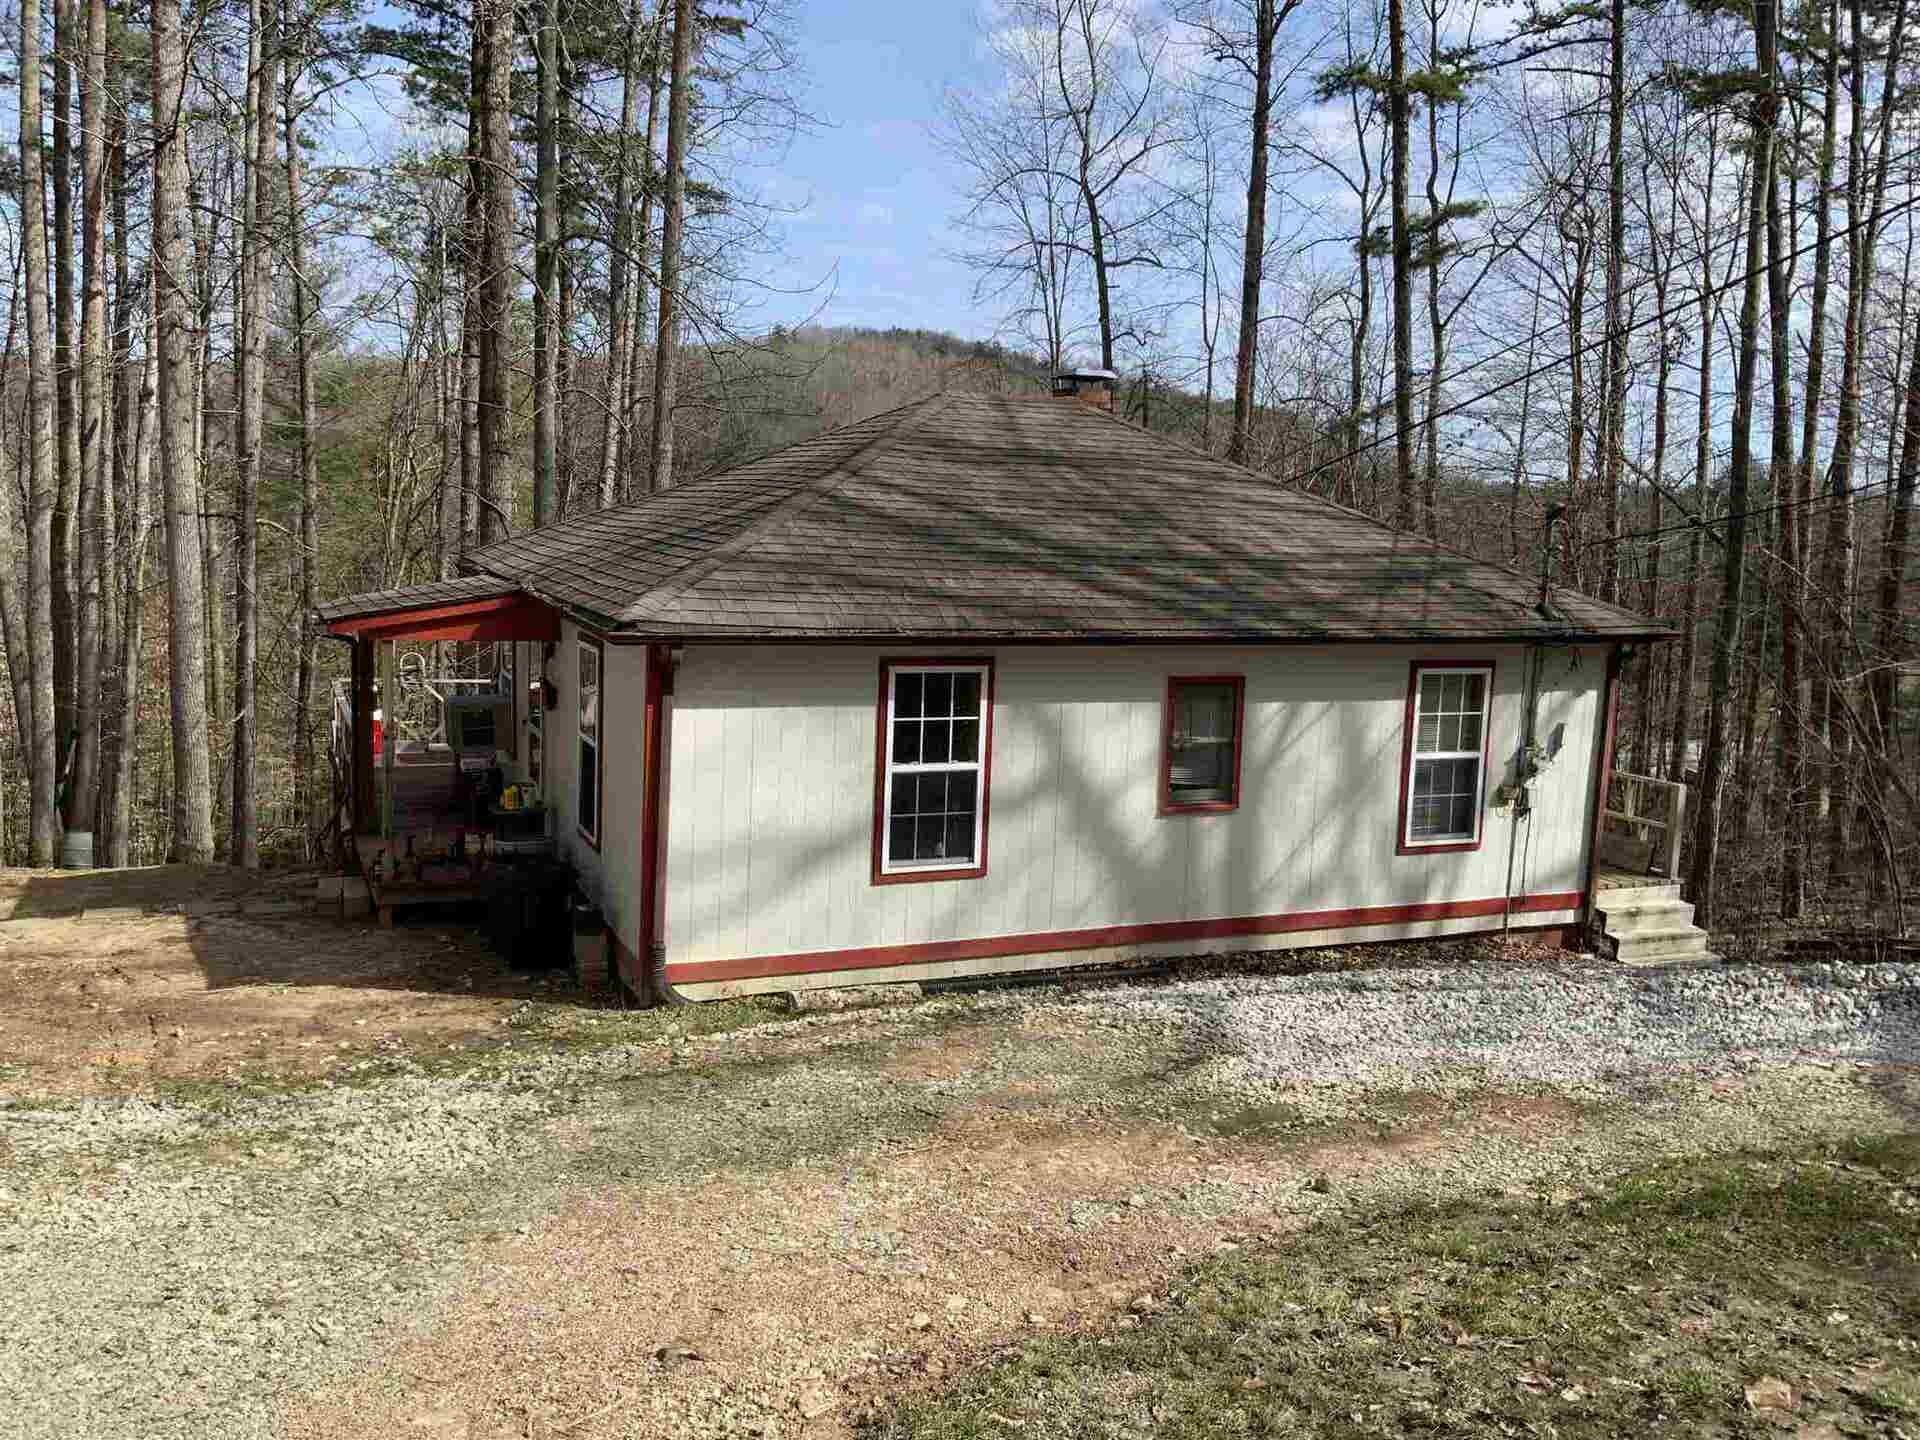 For Sale 20 Sloans Valley Circle Burnside Ky 42519 Other Areas 2 Beds 1 Full Bath 144 500 Mls 547165